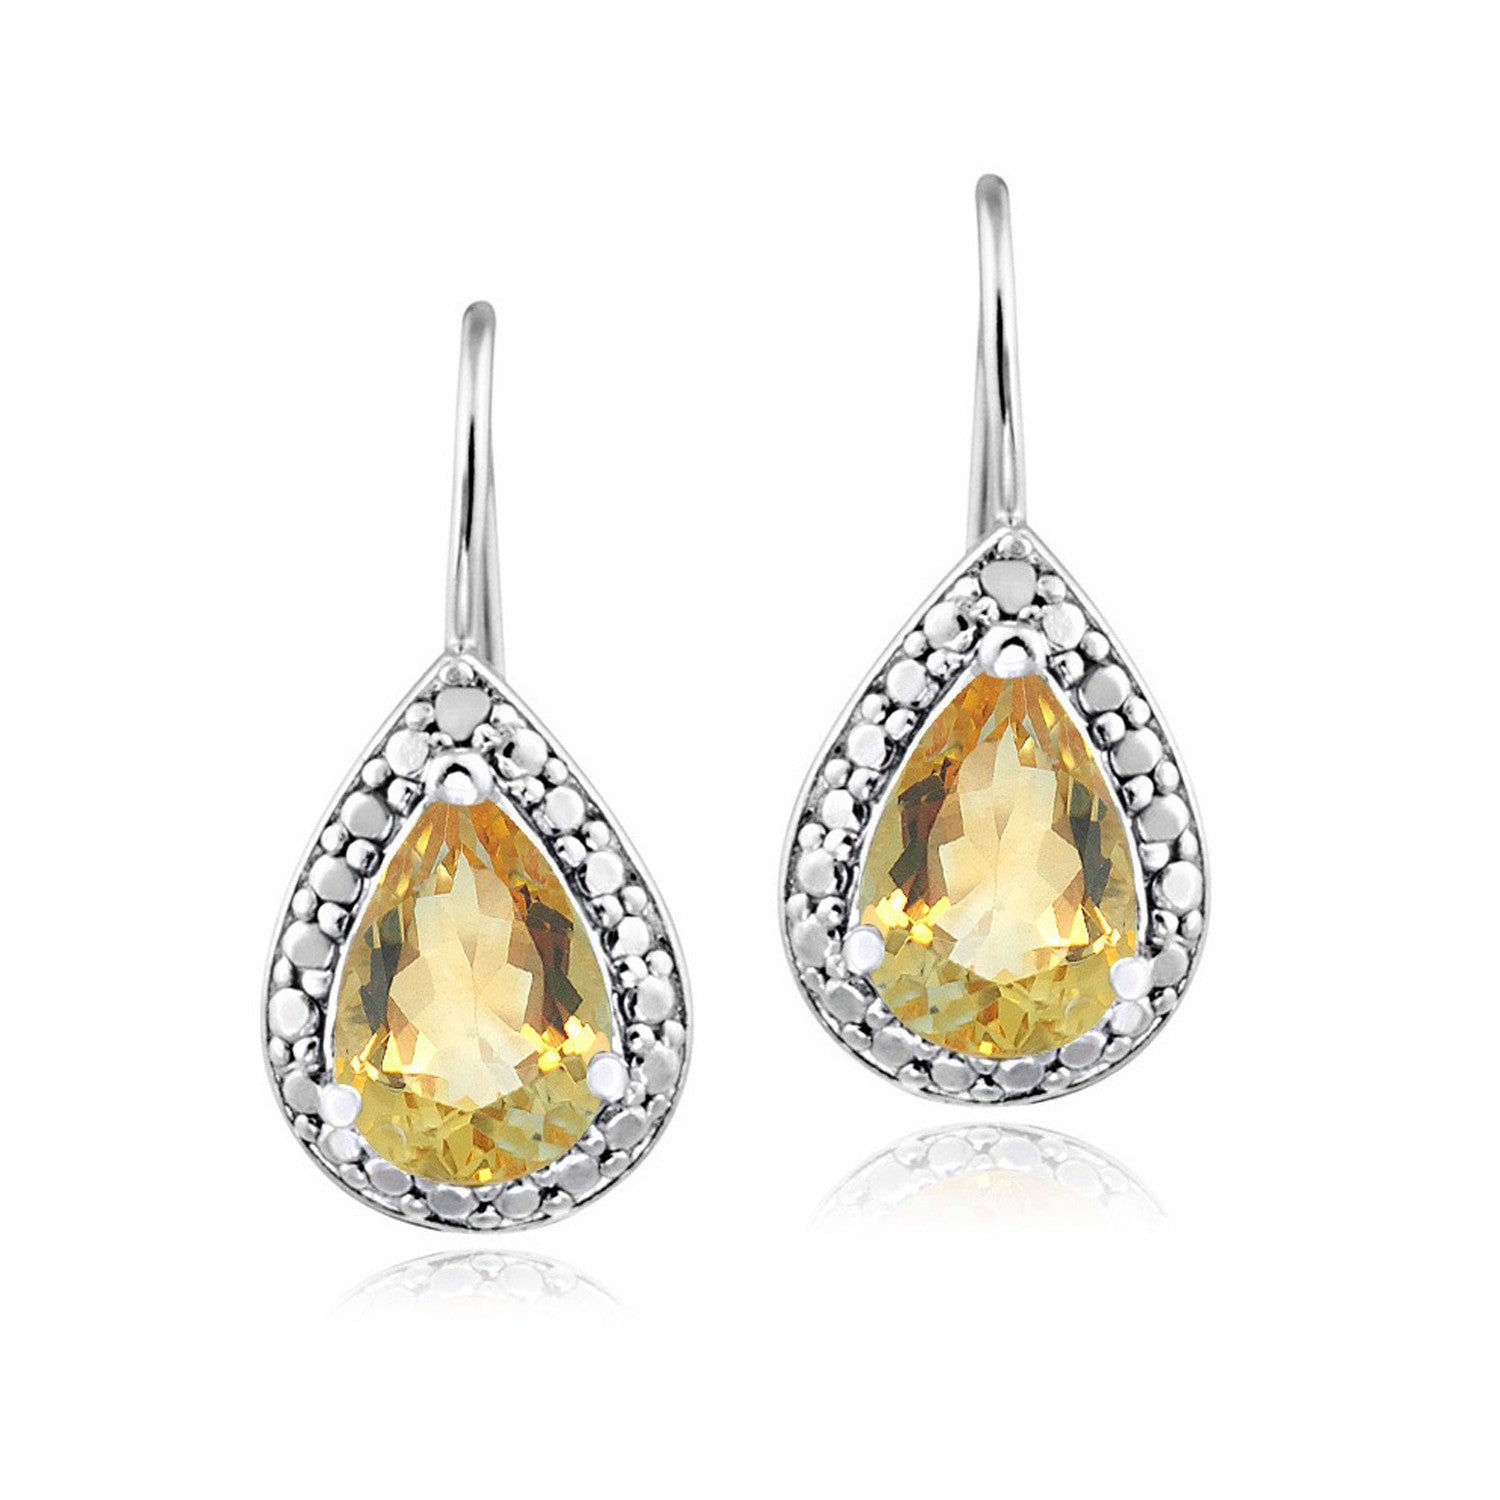 Sterling Silver Diamond & Gemstone Accent Leverback Dangle Earrings - Citrine